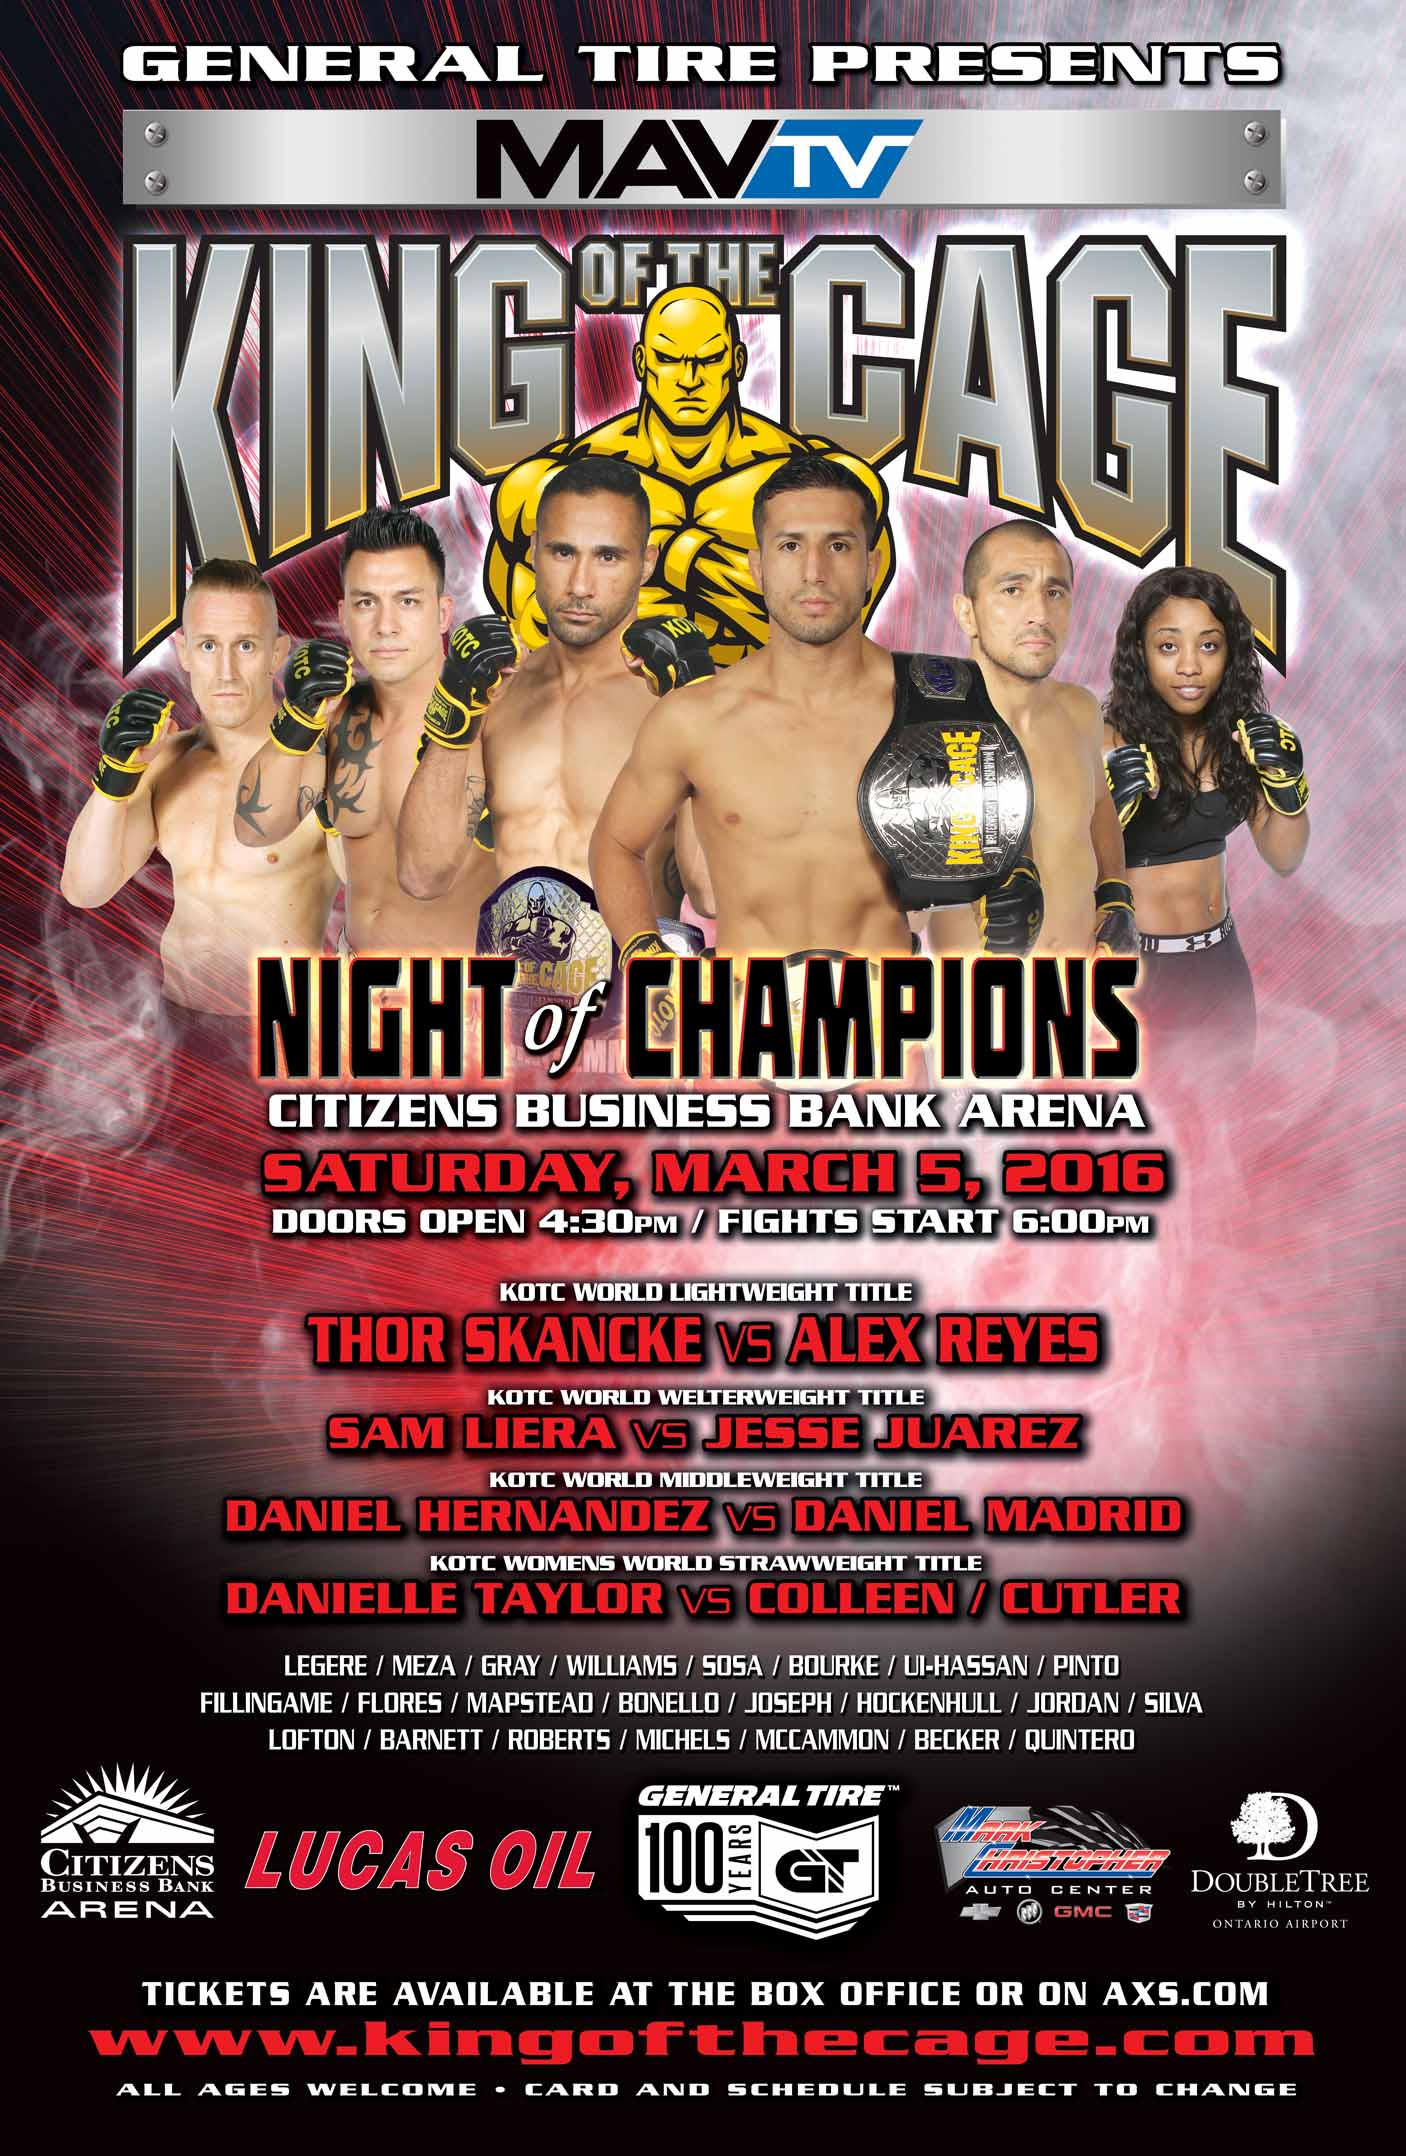 king of the cage returns to citizens business bank arena with a